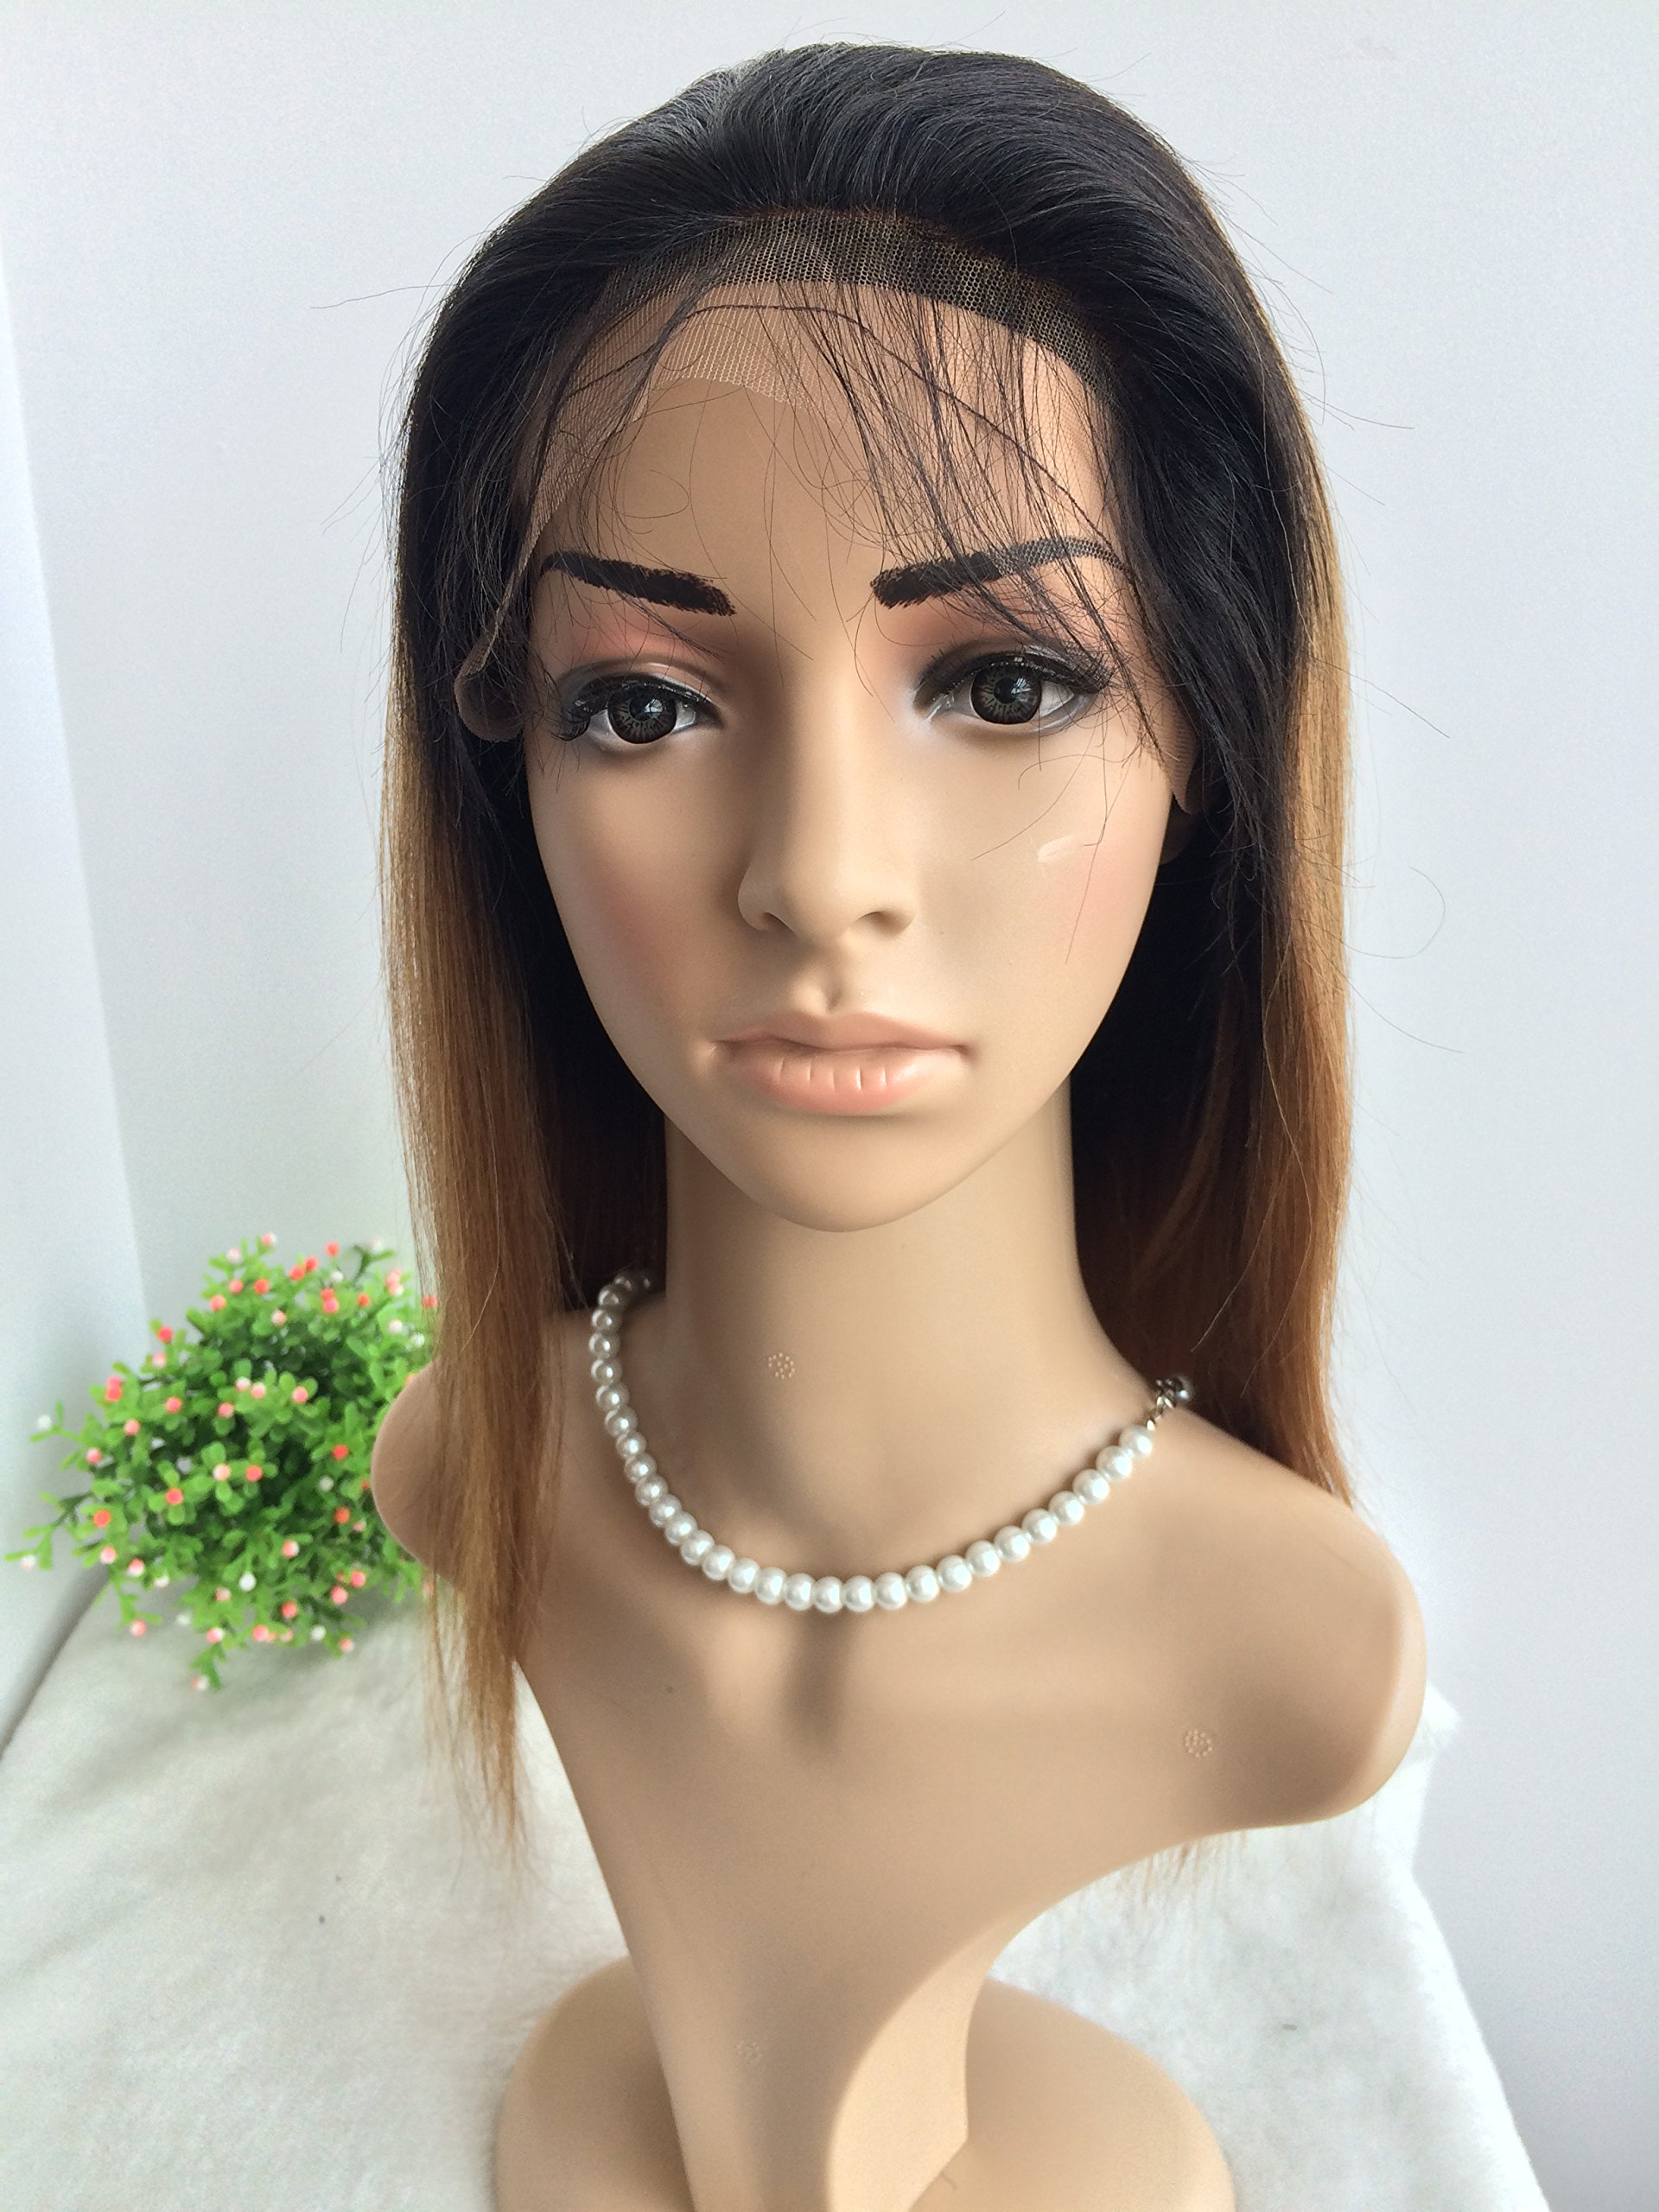 CHINESE VIRGIN 10 INCH,LIGHT YAKI,FULL LACE WIGS SILK TOP,BLEACHED KNOTS--hot sale product!!! by April silk top wigs (Image #6)